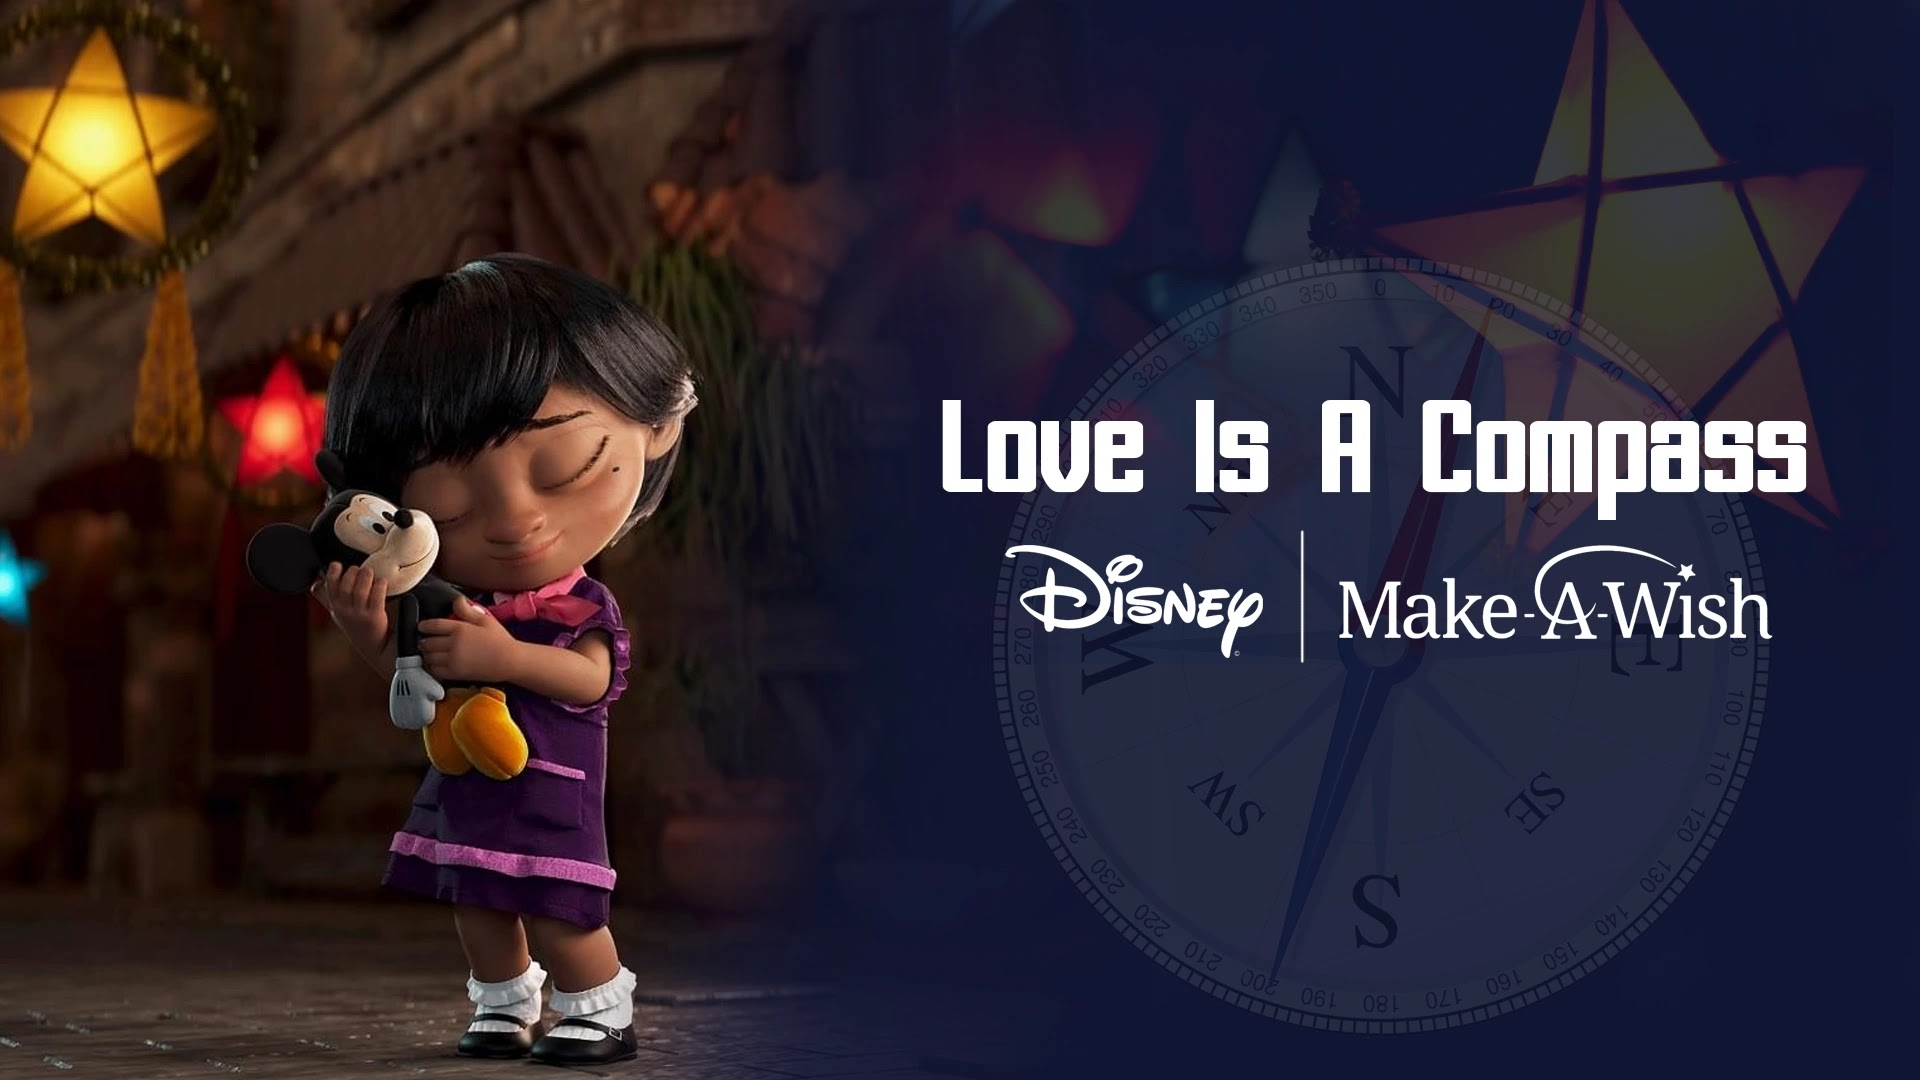 Love Is A Compass - Griff (Disney supporting Make-A-Wish)